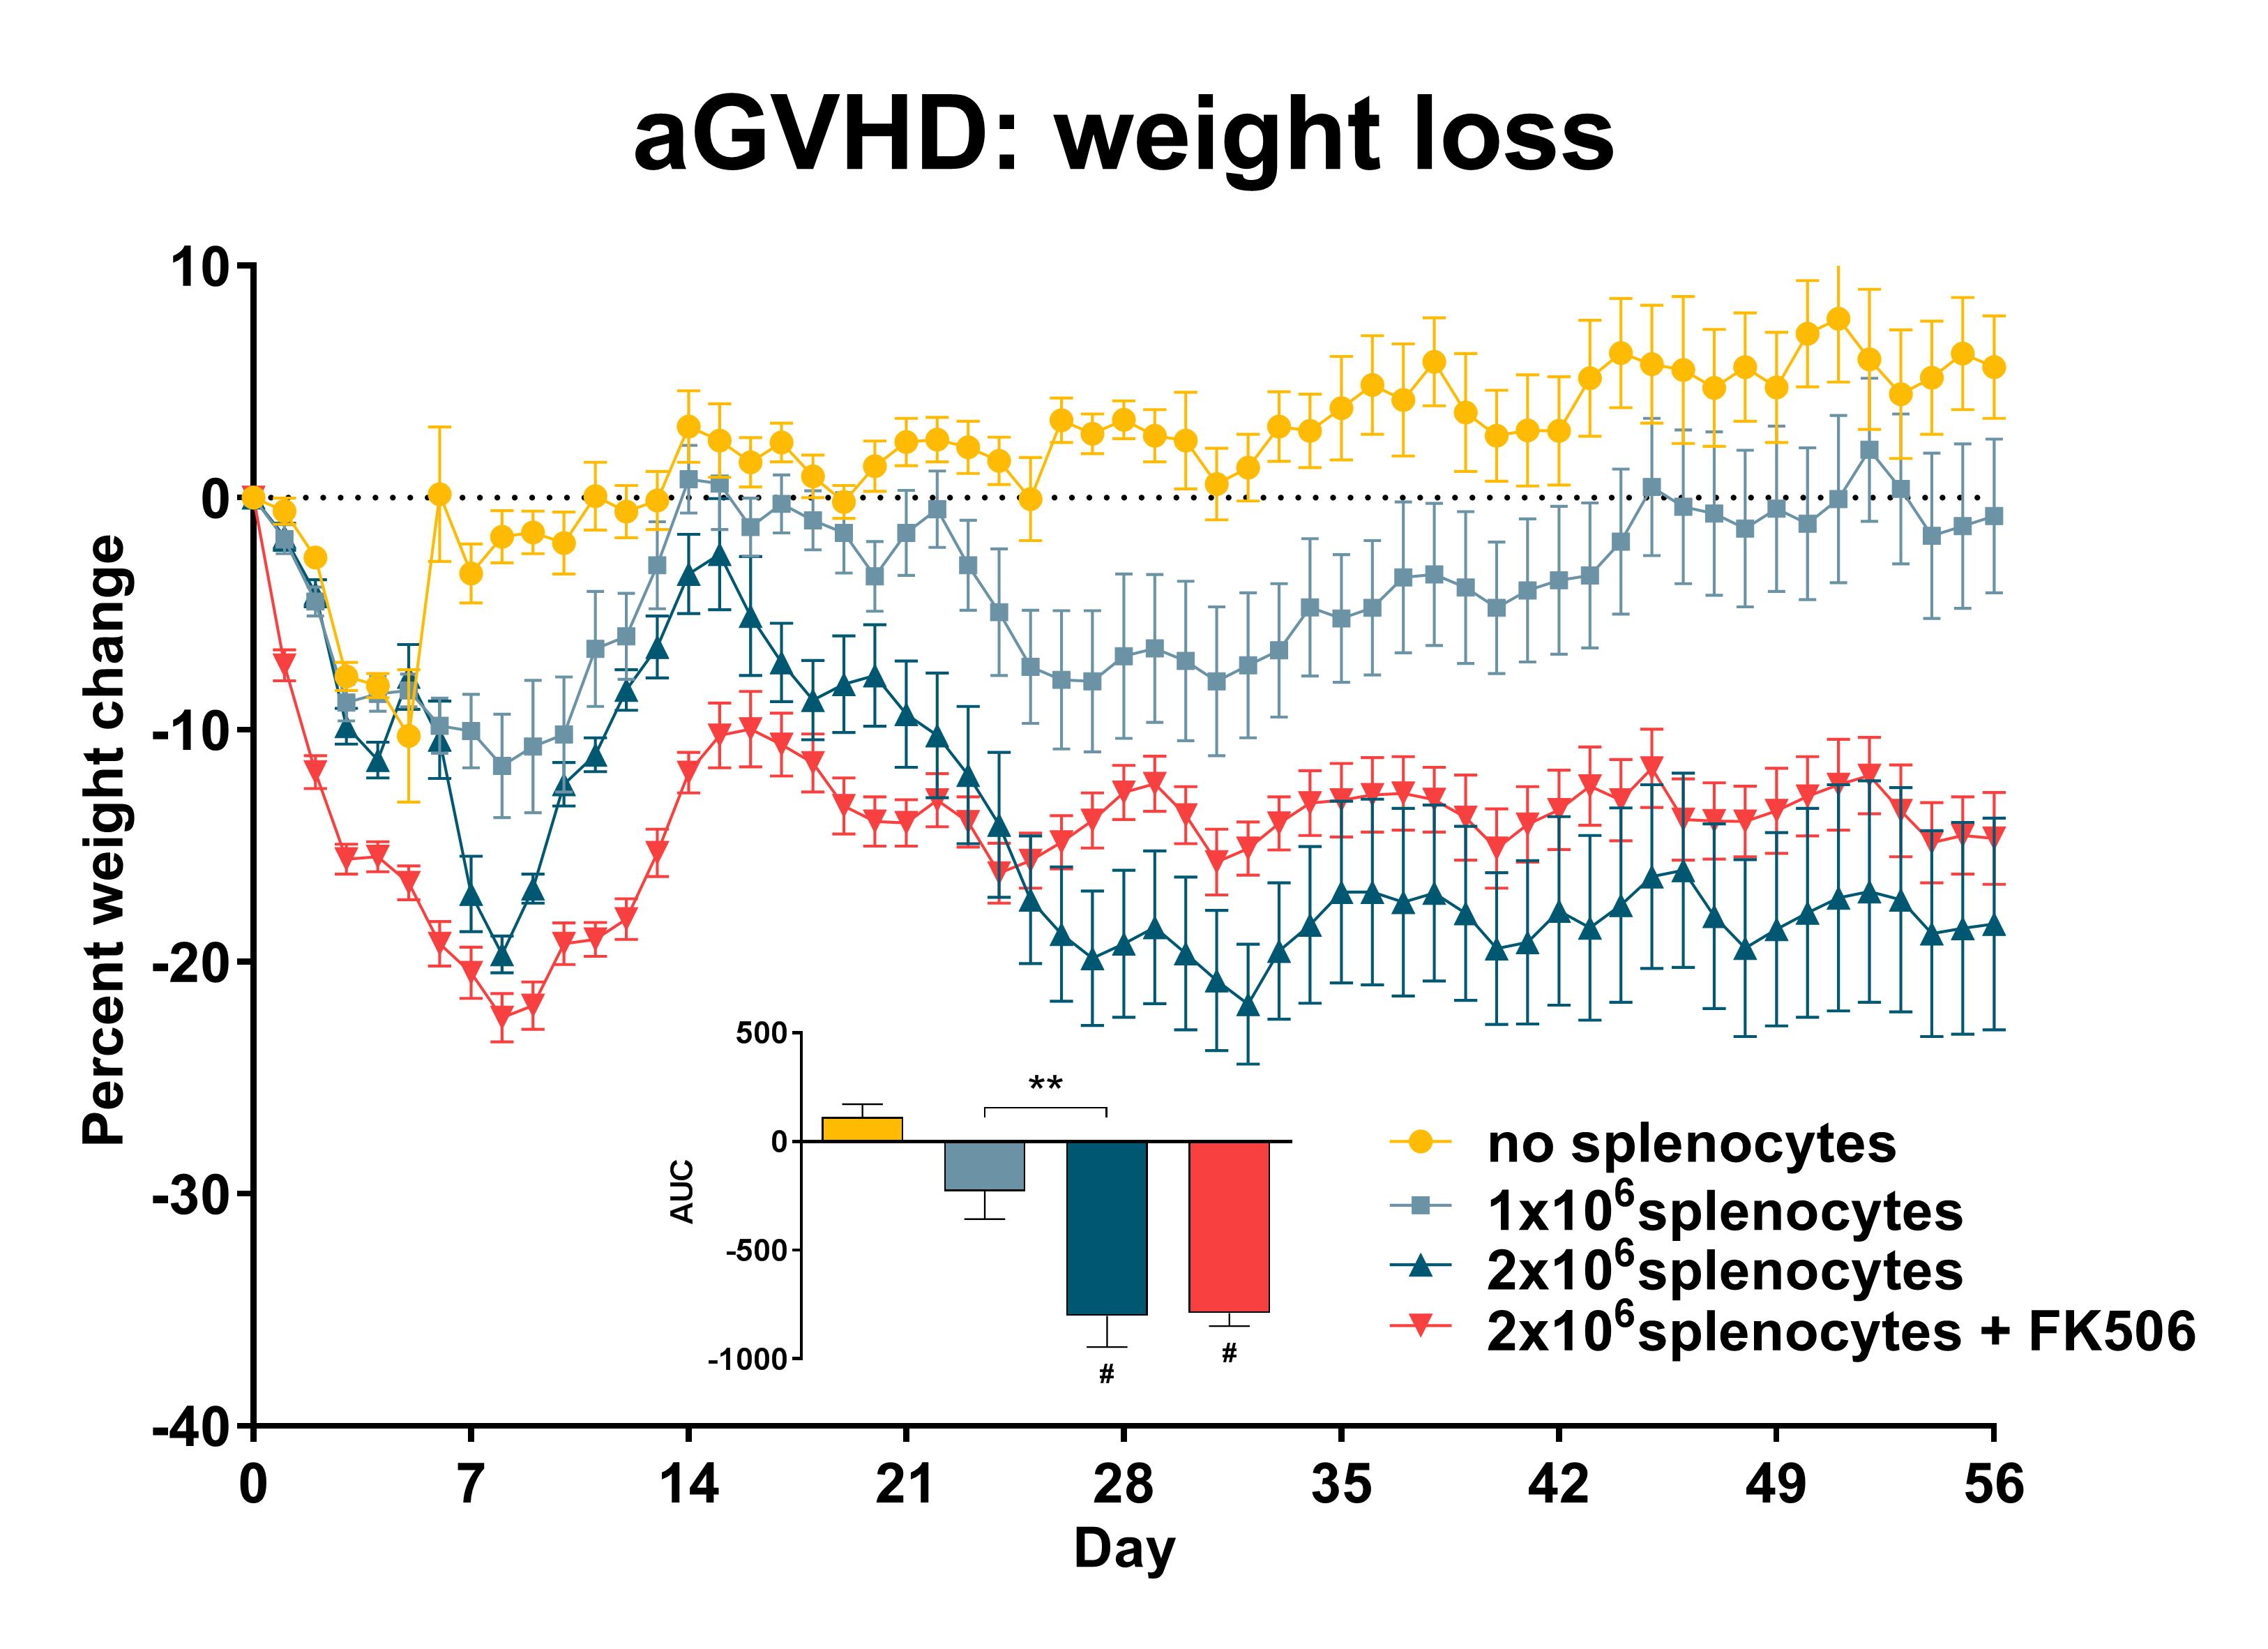 Recipient mice were pre-conditioned and transplanted with 1x107donor-derived CD3-depleted bone marrow cells supplemented with different numbers of splenocytes (see legend) on day 0. Weights were recorded daily and the percent weight change relative to day 0 was calculated. Statistical evaluation by one-way ANOVA with Holm-Šidák's multiple comparison post-test. **: p<0.01 comparing indicated groups; #: p<0.05 comparing indicated groups to the 'no splenocytes' control. AUC: area under the curve; n=15 per gro